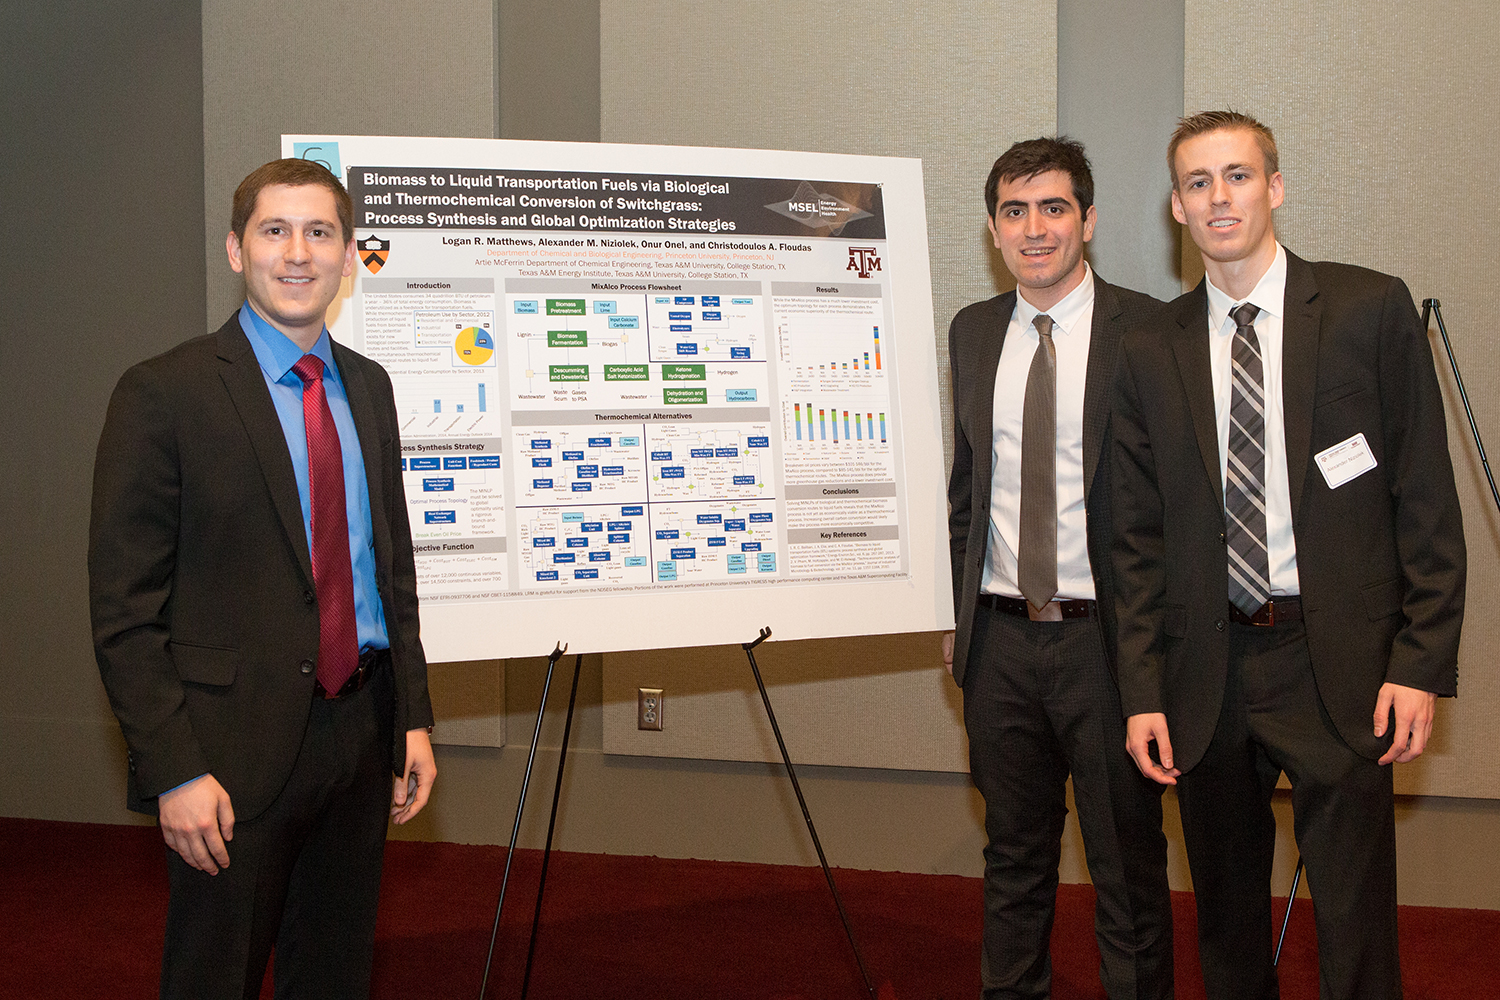 Third Place, Poster Contest: Logan R. Matthews, Onur Onel, and Alexander M. Niziolek - Research Workshop on Non-Fossil-based Technologies for Energy